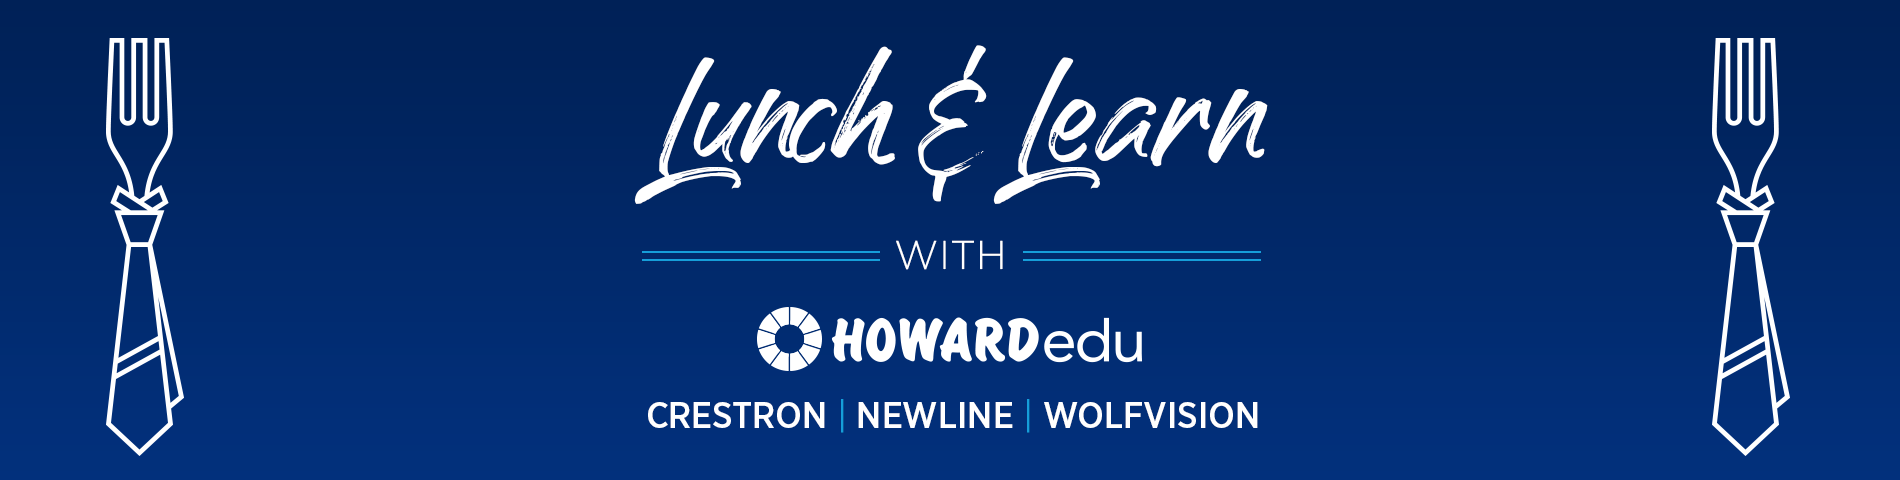 NJ Lunch and Learn